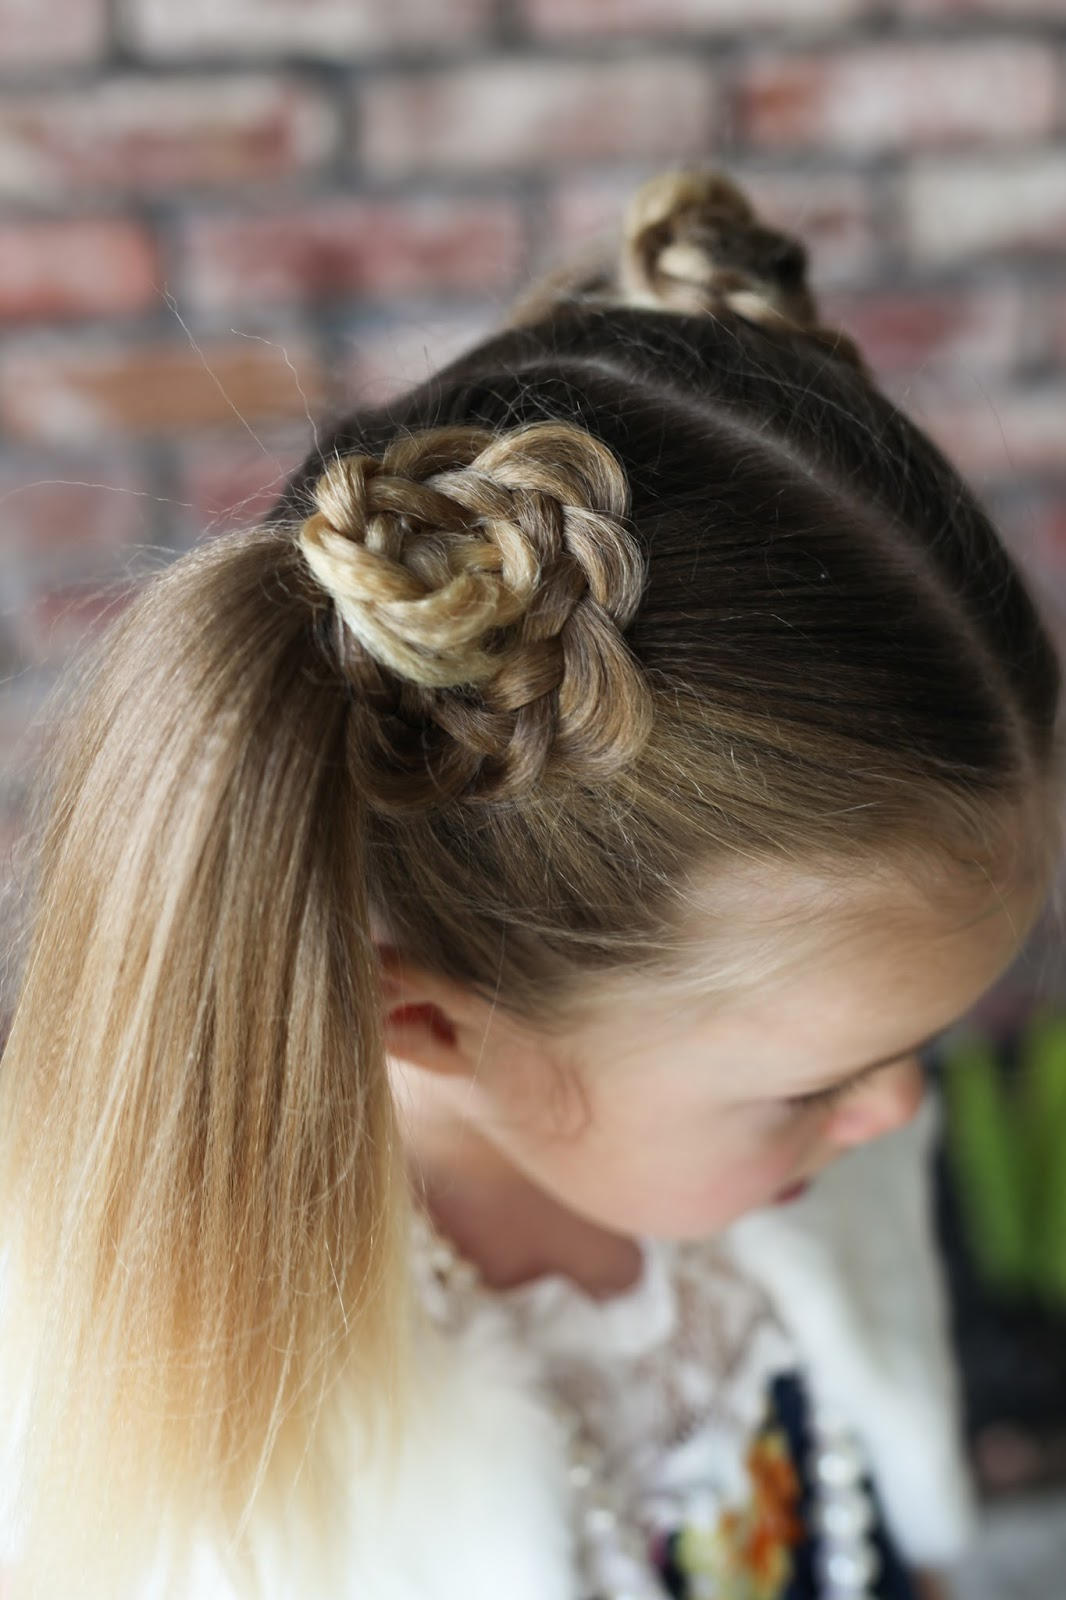 I Textured Her Hair With The Sam Villa Textur Iron, Then Did Pigtails I  Took A Chunk Of Hair From The Top Of The Pigtail, Braided It, Pancaked It  And Made